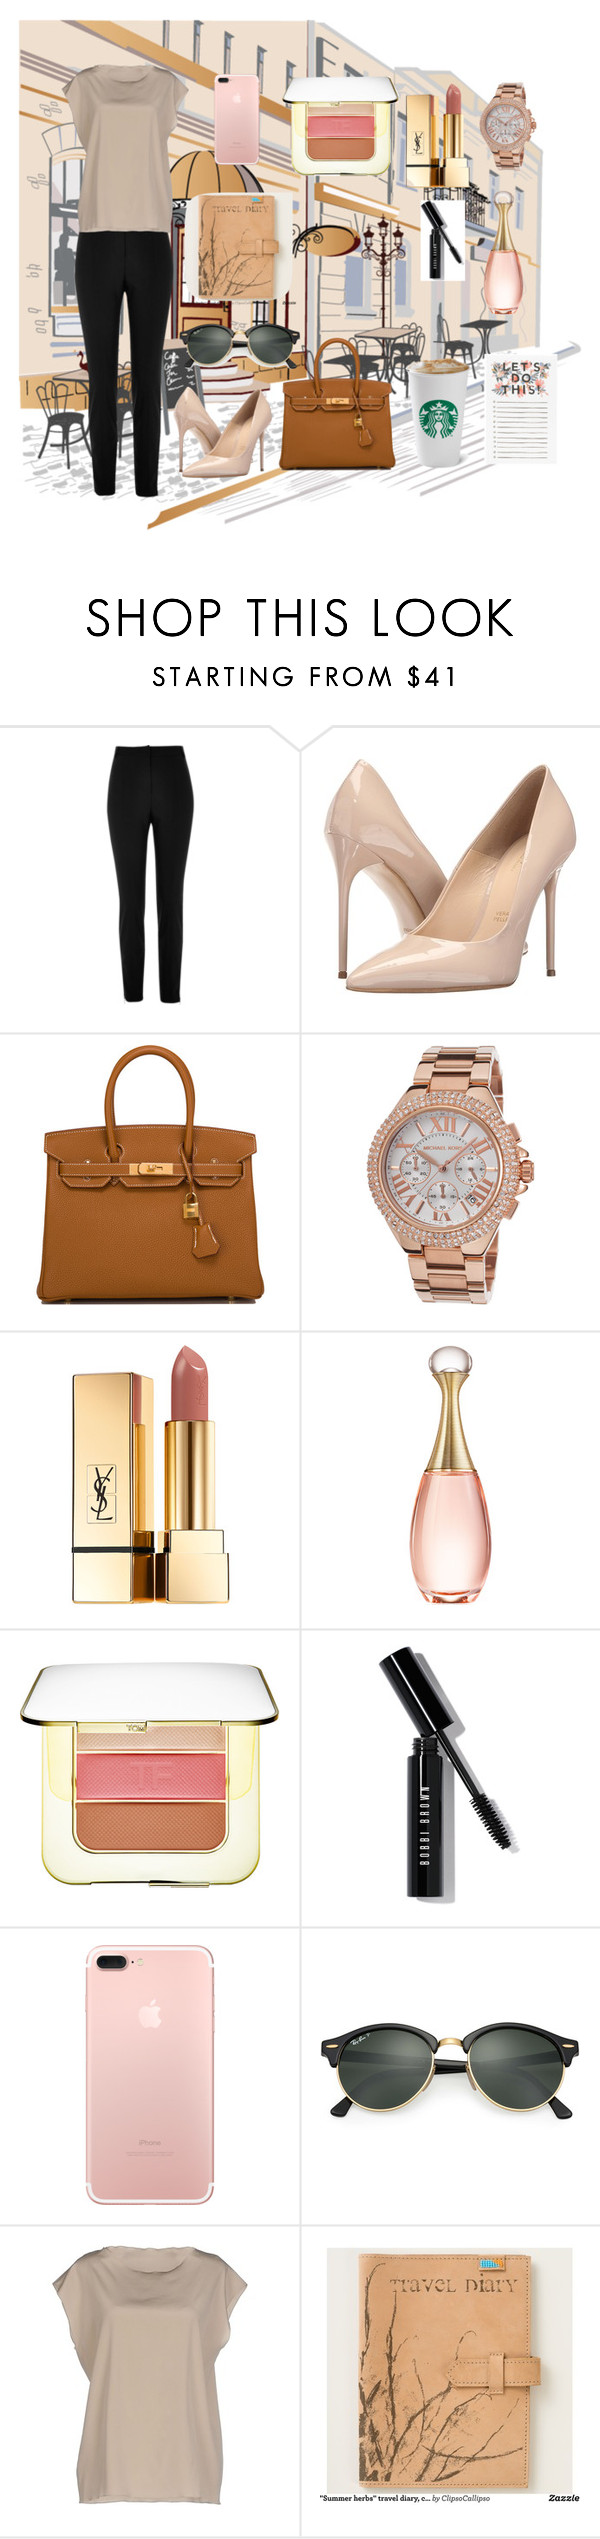 """Coffee Date"" by meow19 on Polyvore featuring River Island, Massimo Matteo, Hermès, Michael Kors, Yves Saint Laurent, Christian Dior, Tom Ford, Bobbi Brown Cosmetics, Ray-Ban and Base"